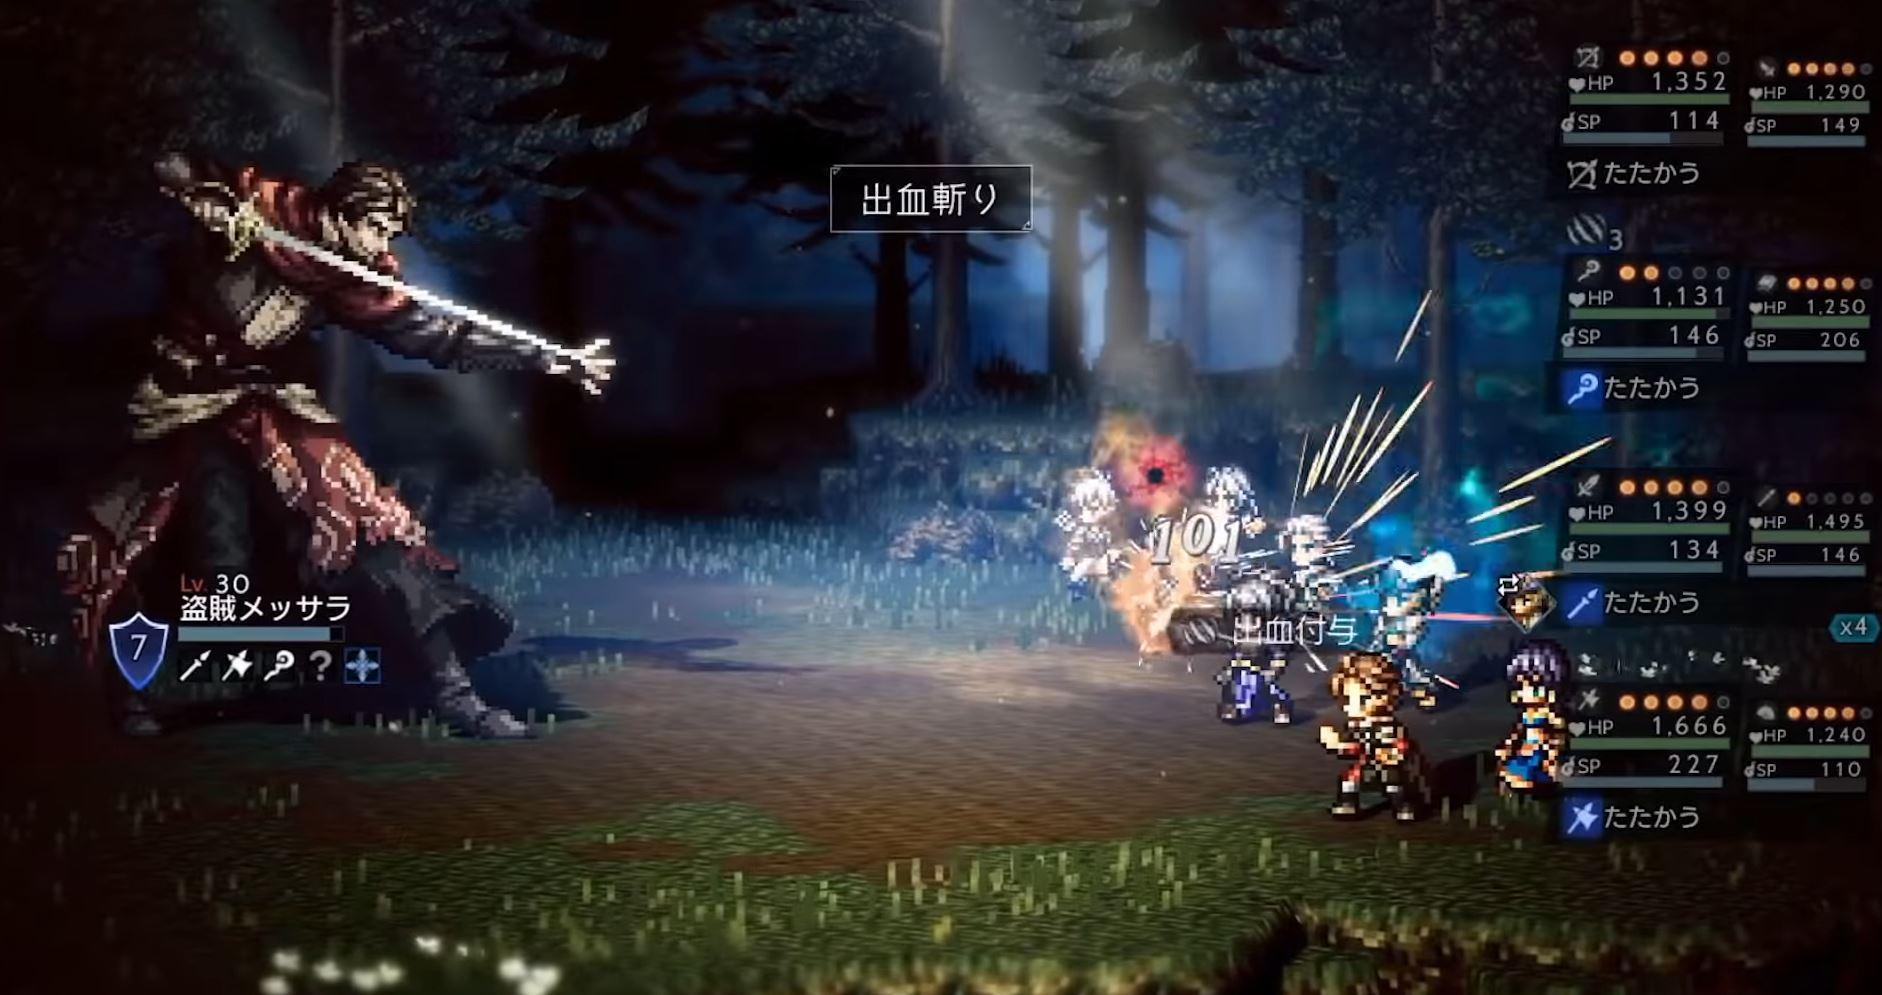 Octopath Traveler PC Download free full game for windows